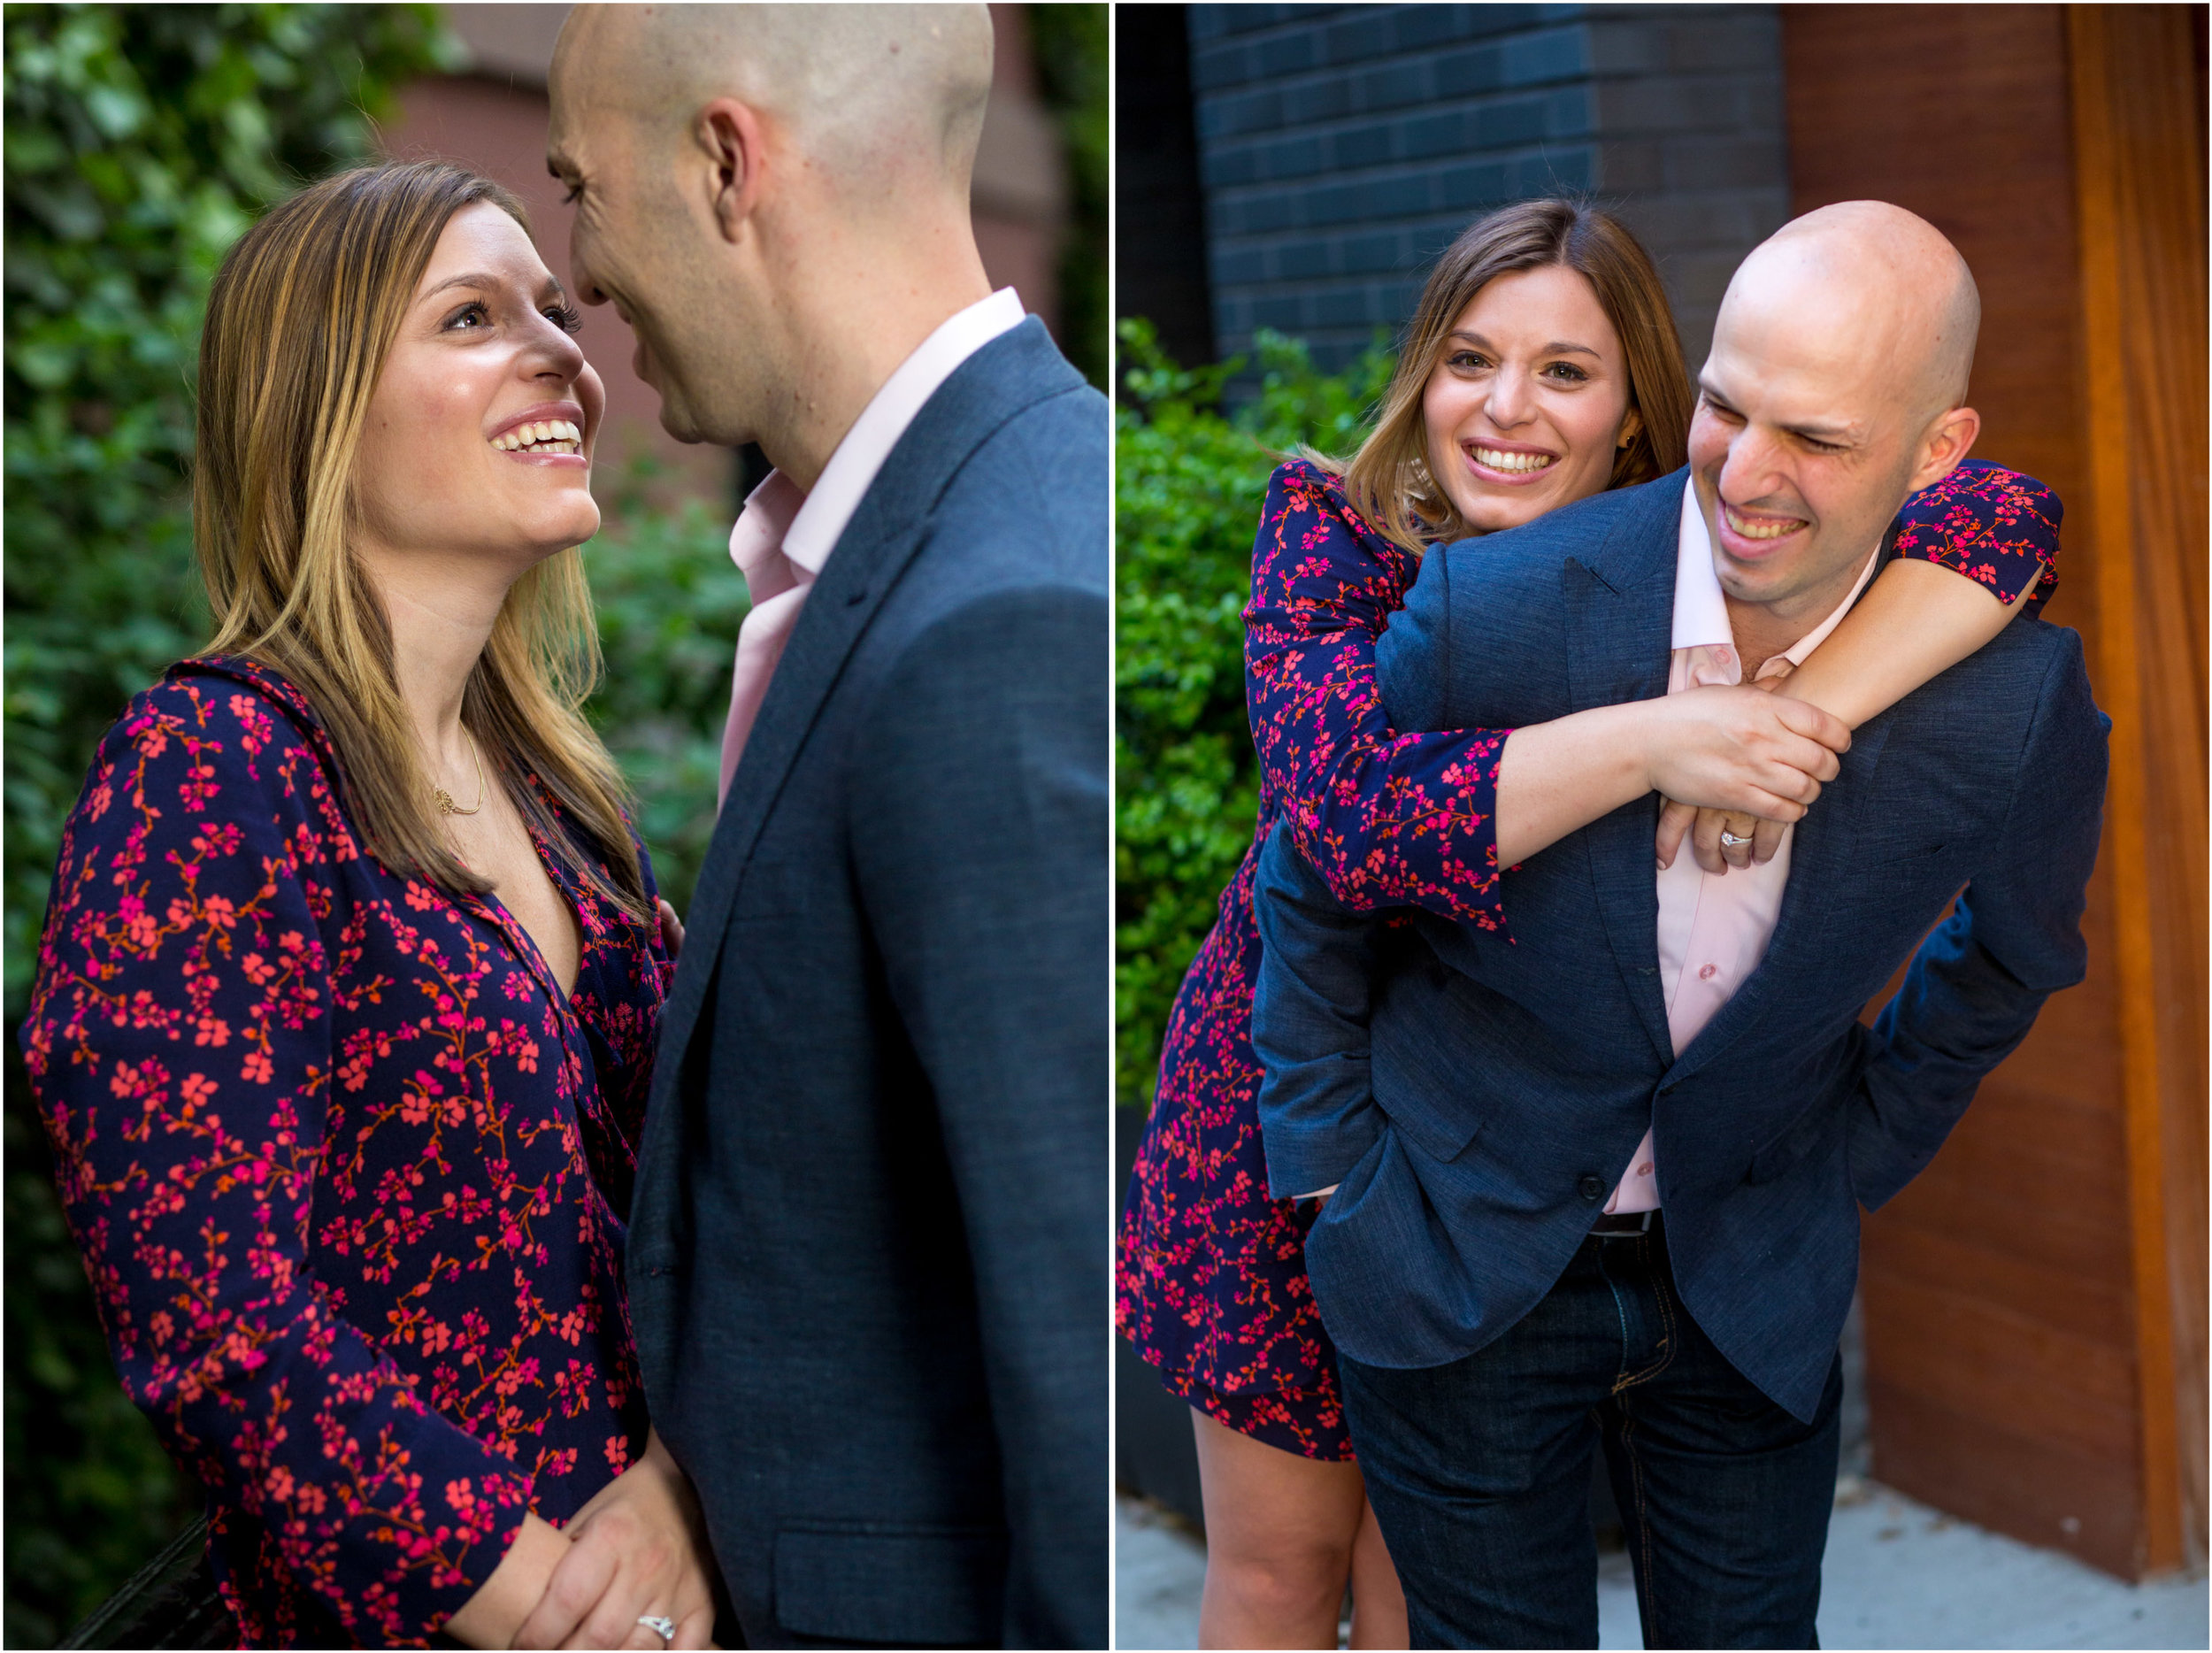 NYC Engagement Session Shoot Photos New York Wedding Photographer-11.jpg